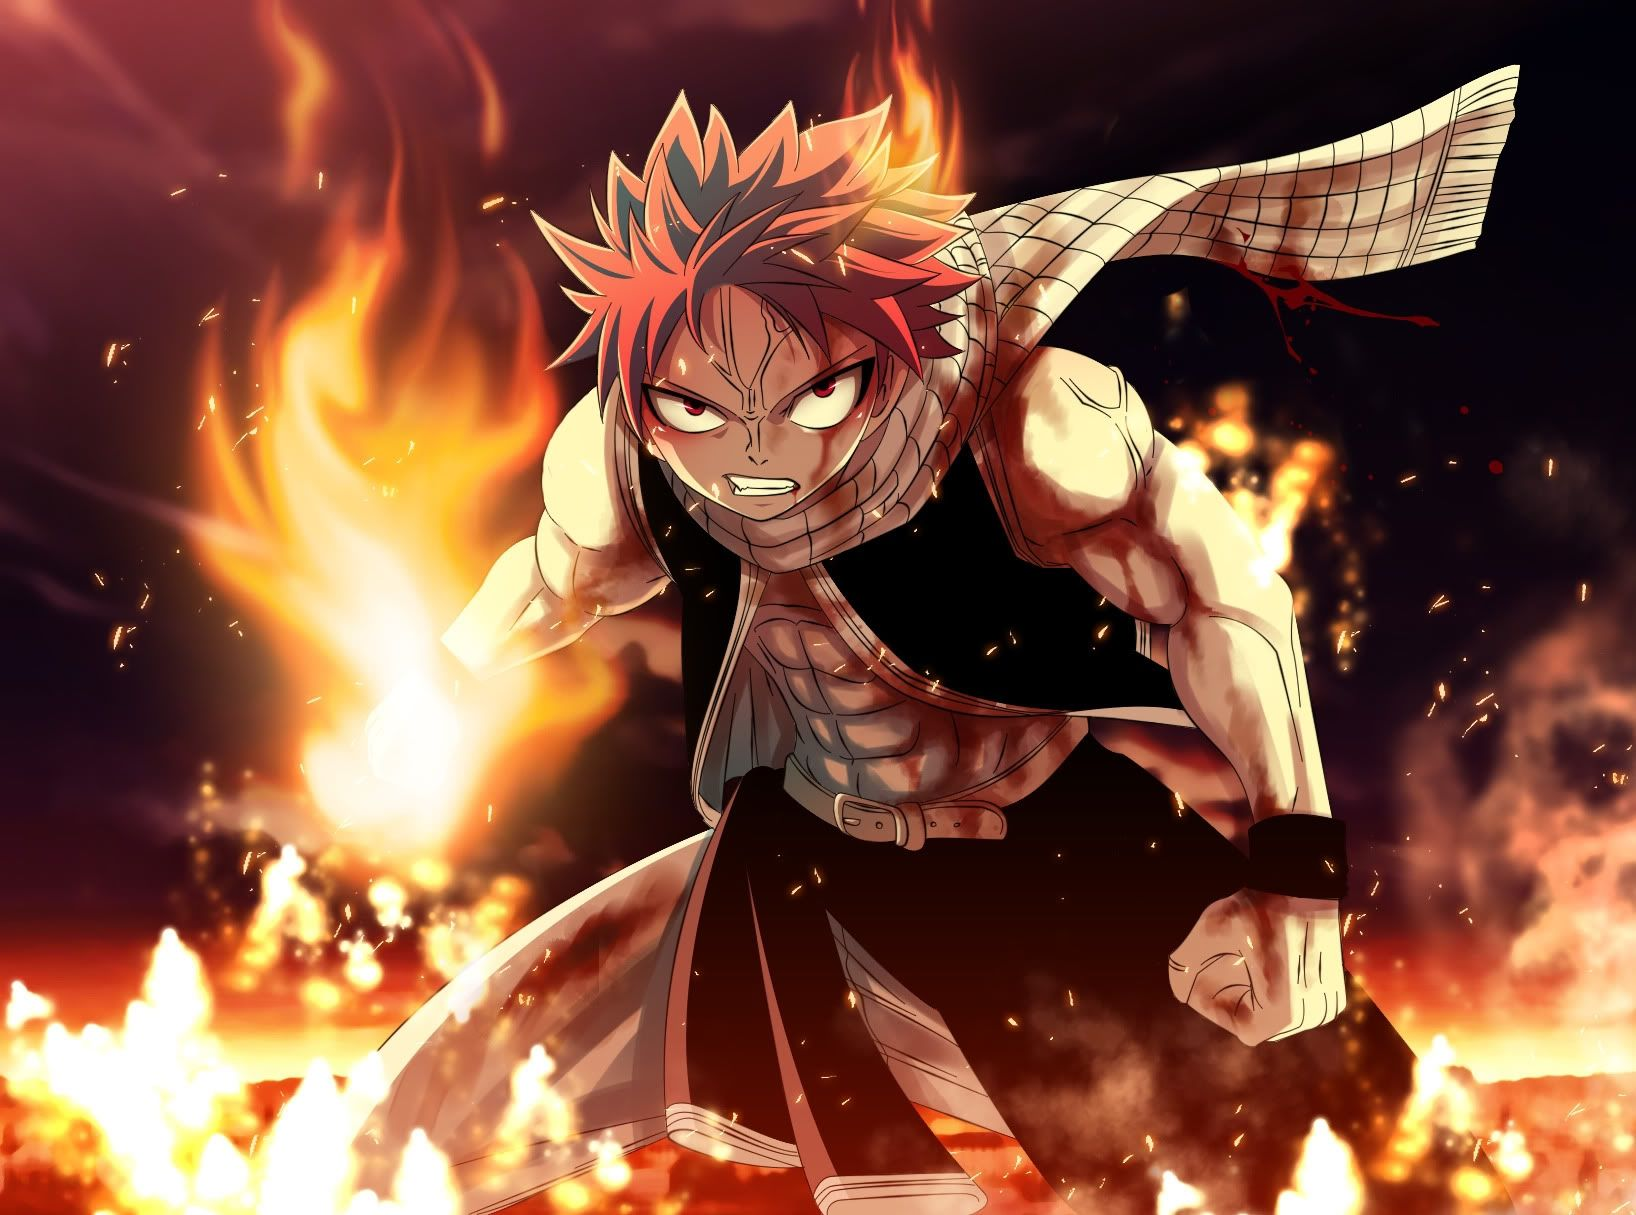 1636x1215 933 Fairy Tail HD Wallpapers | Background Images - Wallpaper Abyss